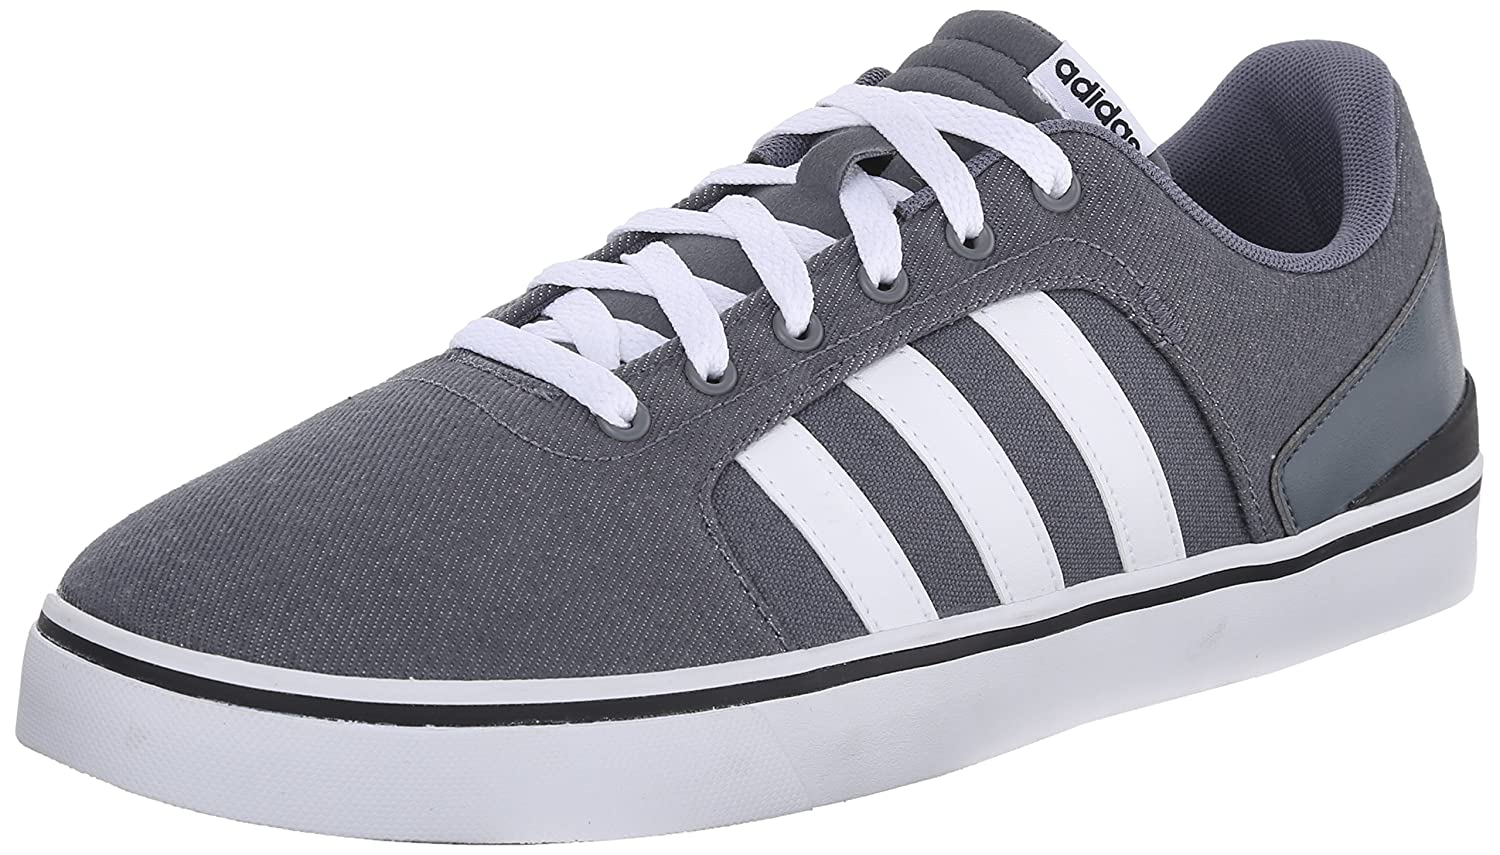 meet 09ab5 30a23 Amazon.com   adidas NEO Men s Hawthorn ST Shoe   Walking